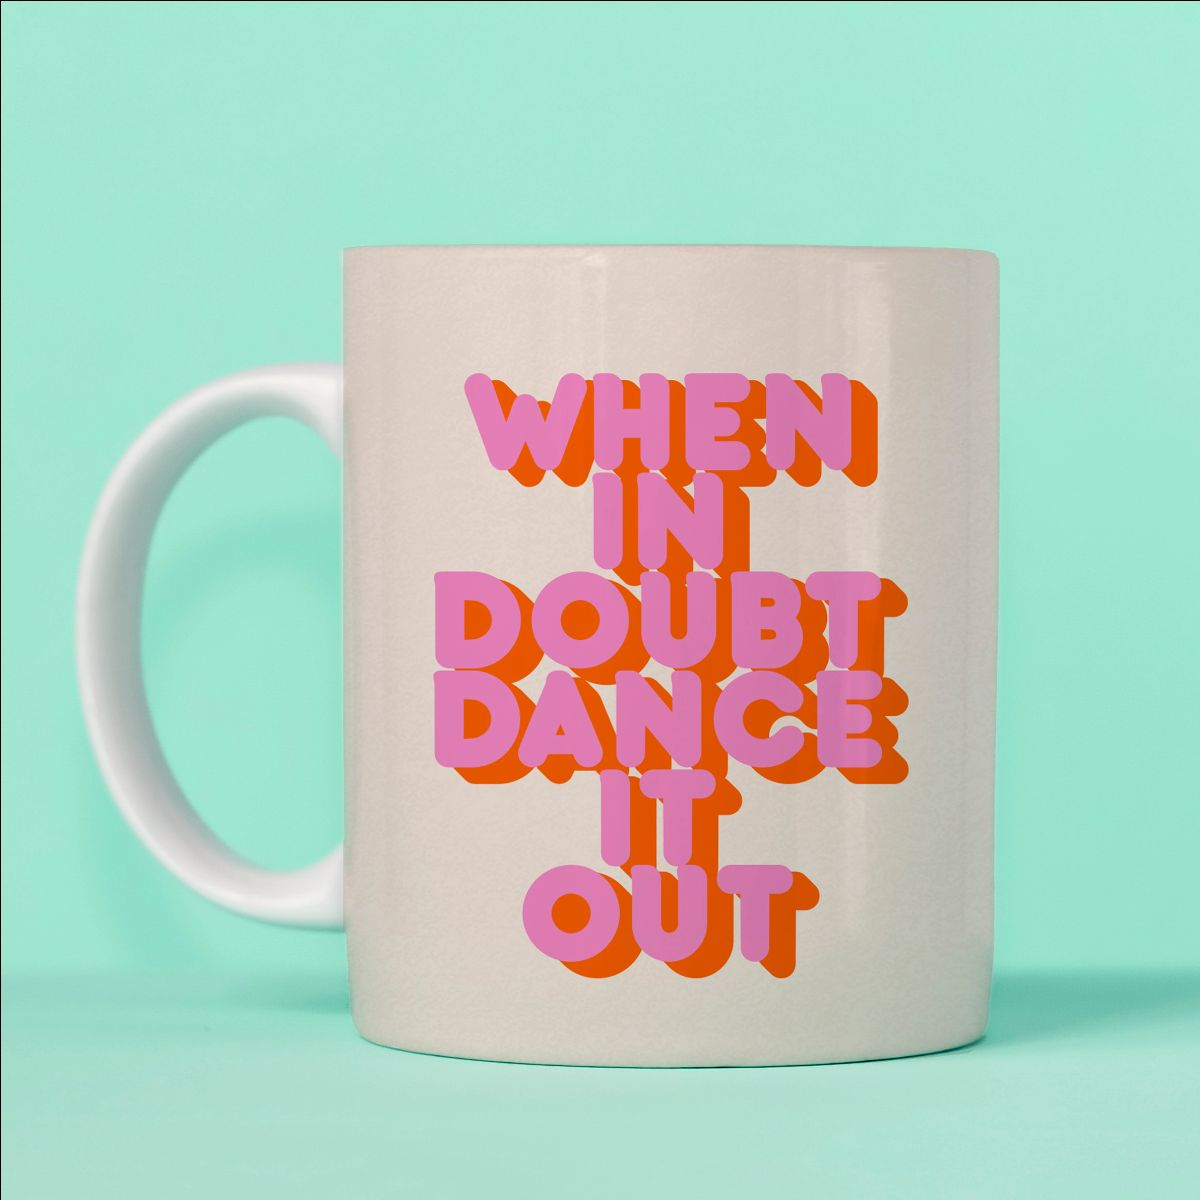 Unique mugs for her